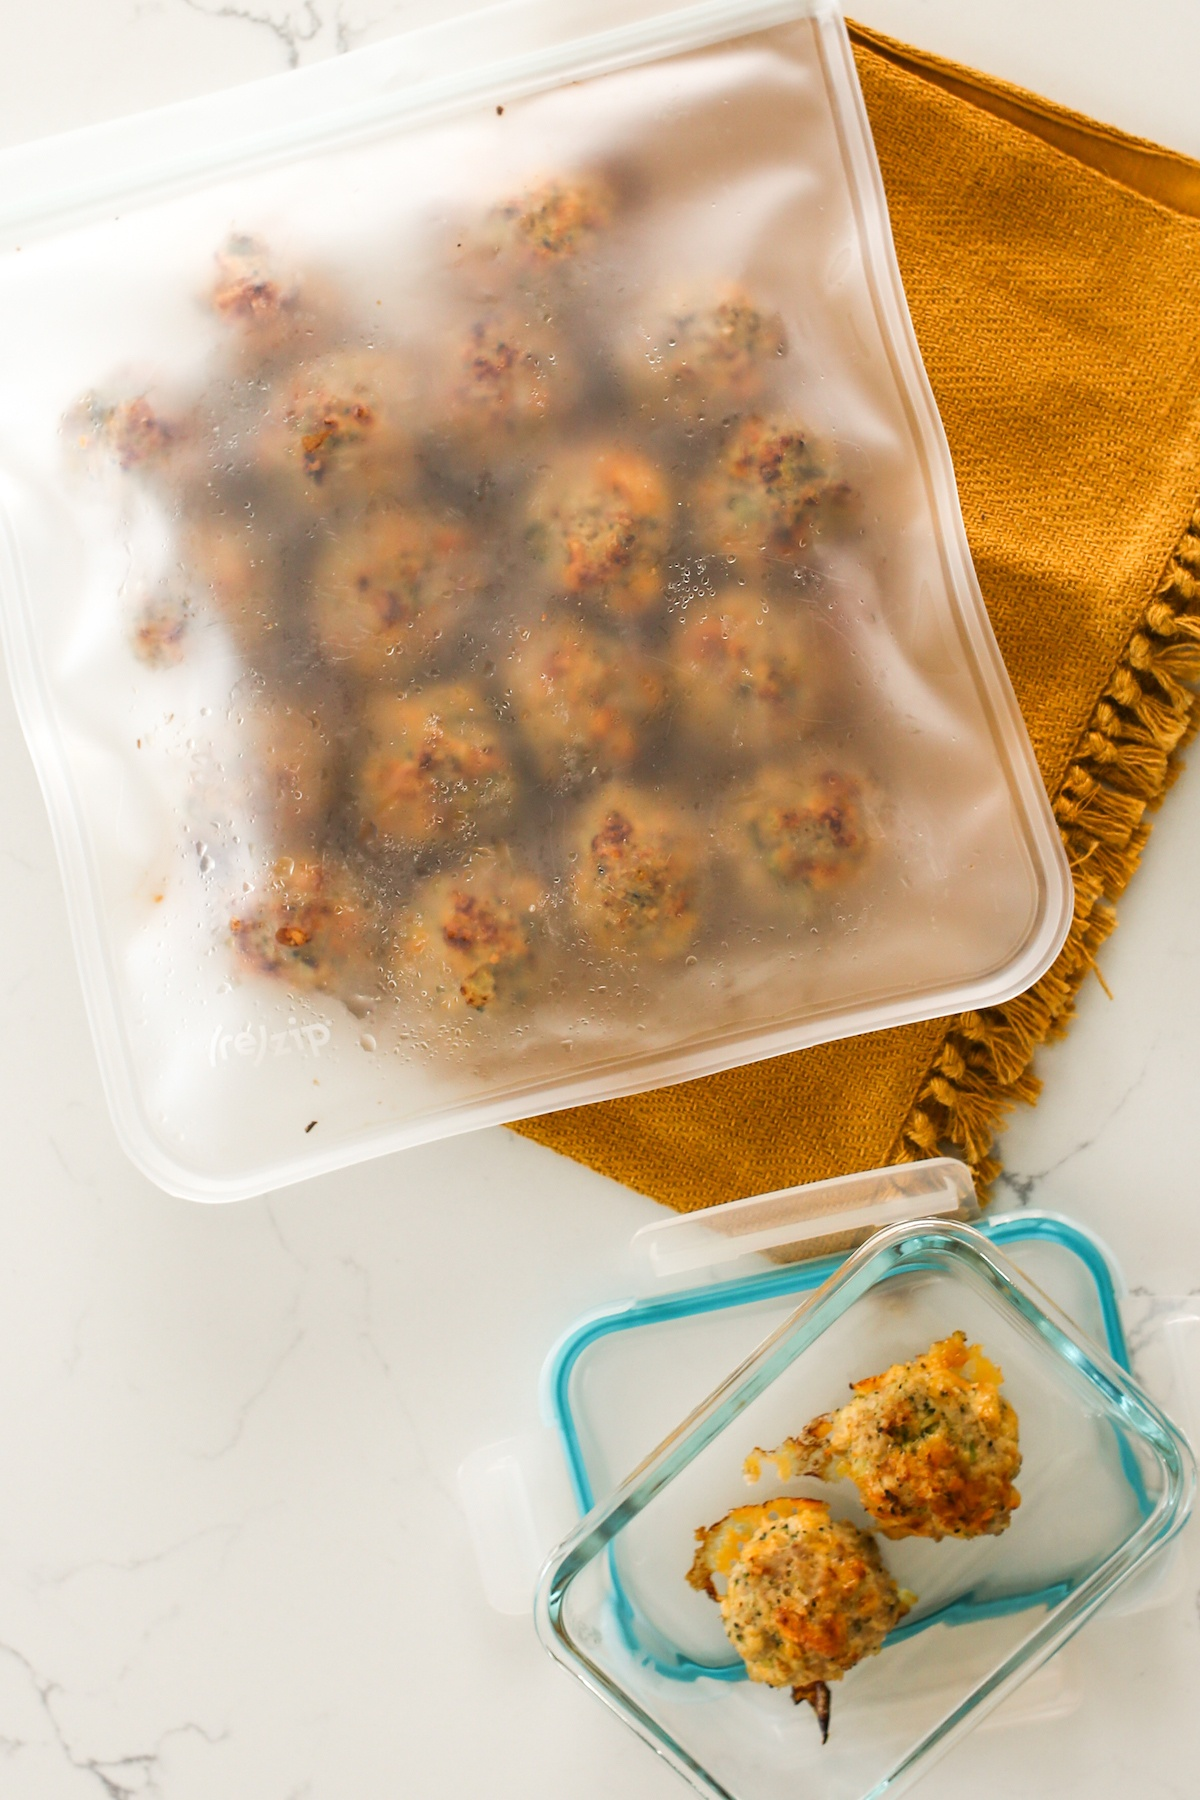 Cheesy Broccoli Turkey Meatballs in a freezer bag with 2 additional meatballs in a glass food storage container